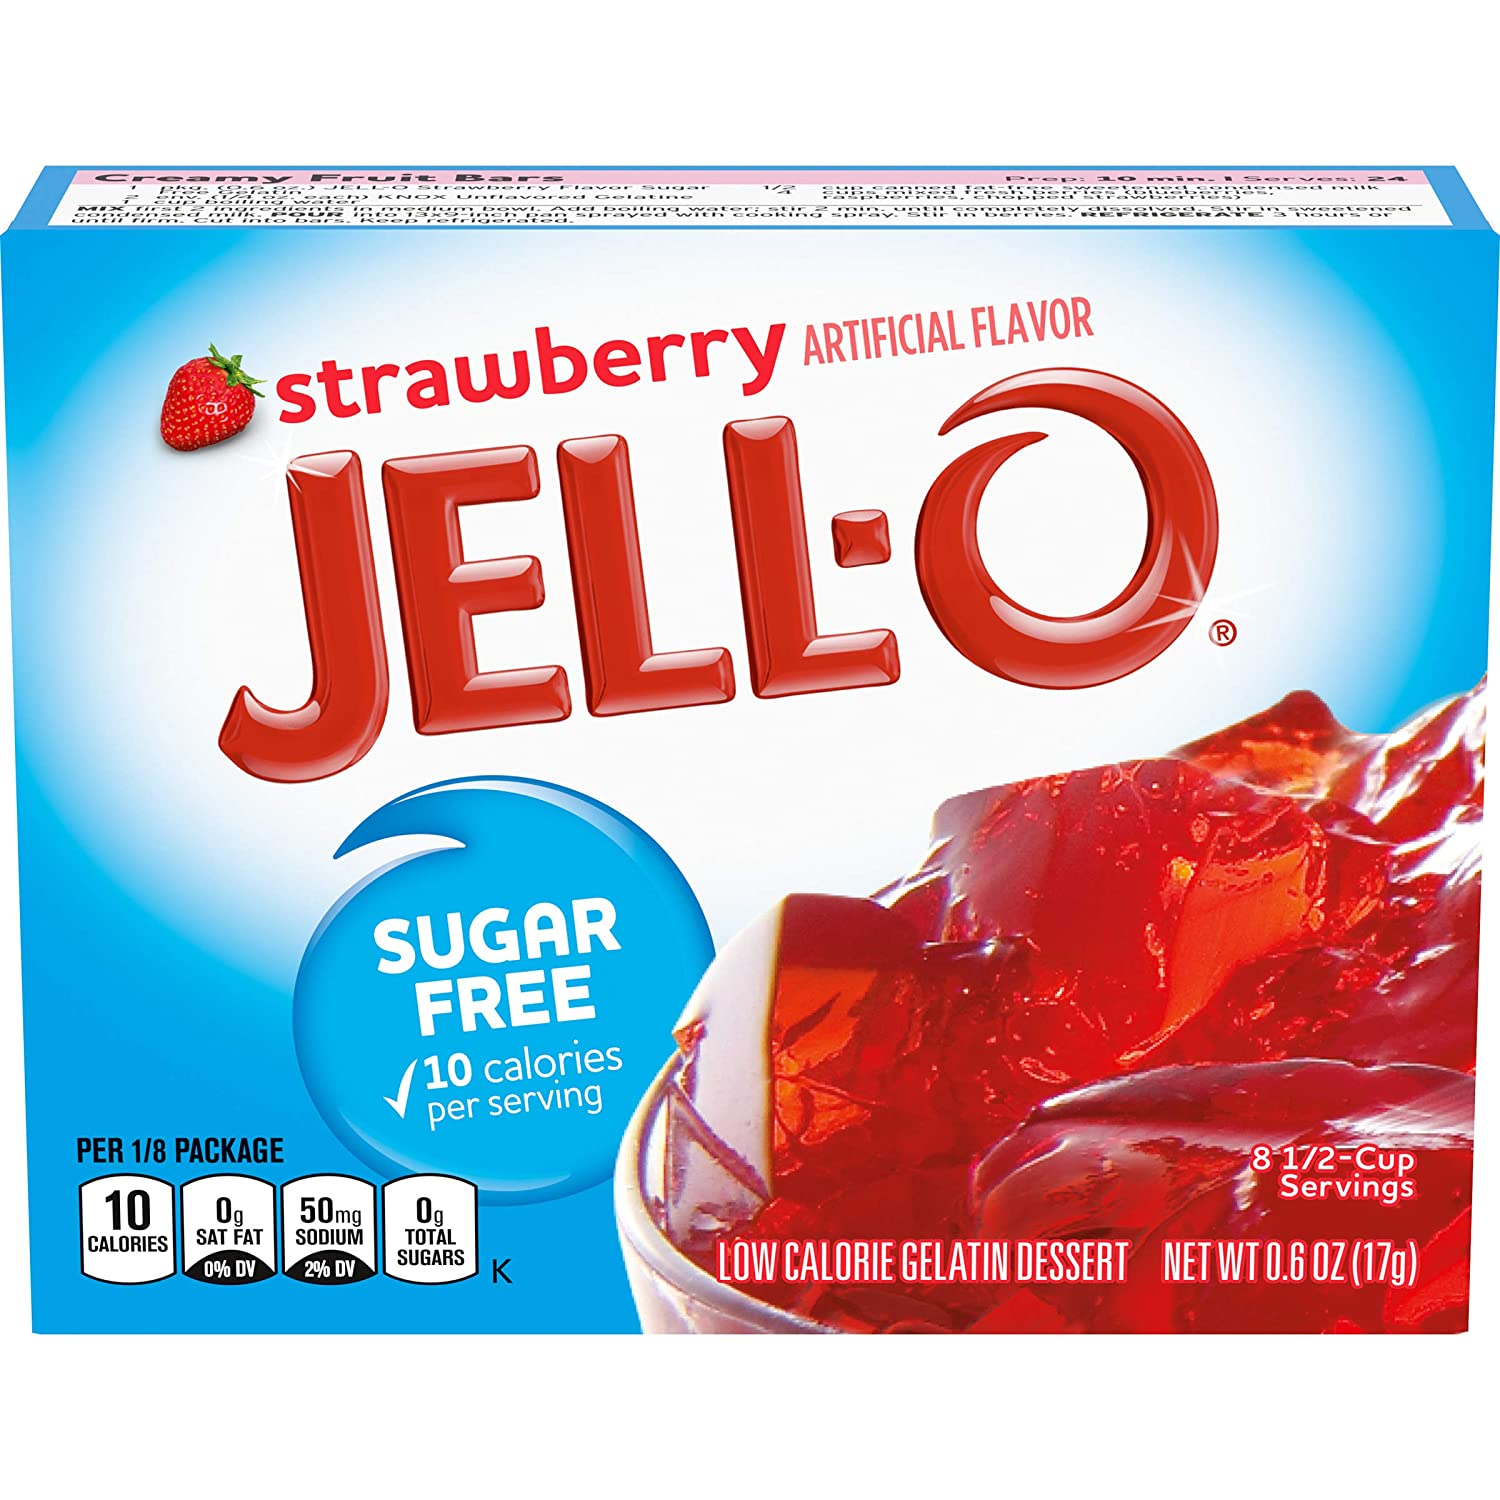 Now on sale Jell-O Minneapolis Mall Strawberry Sugar-Free Gelatin Mix Boxes 0.6 Pack oz of